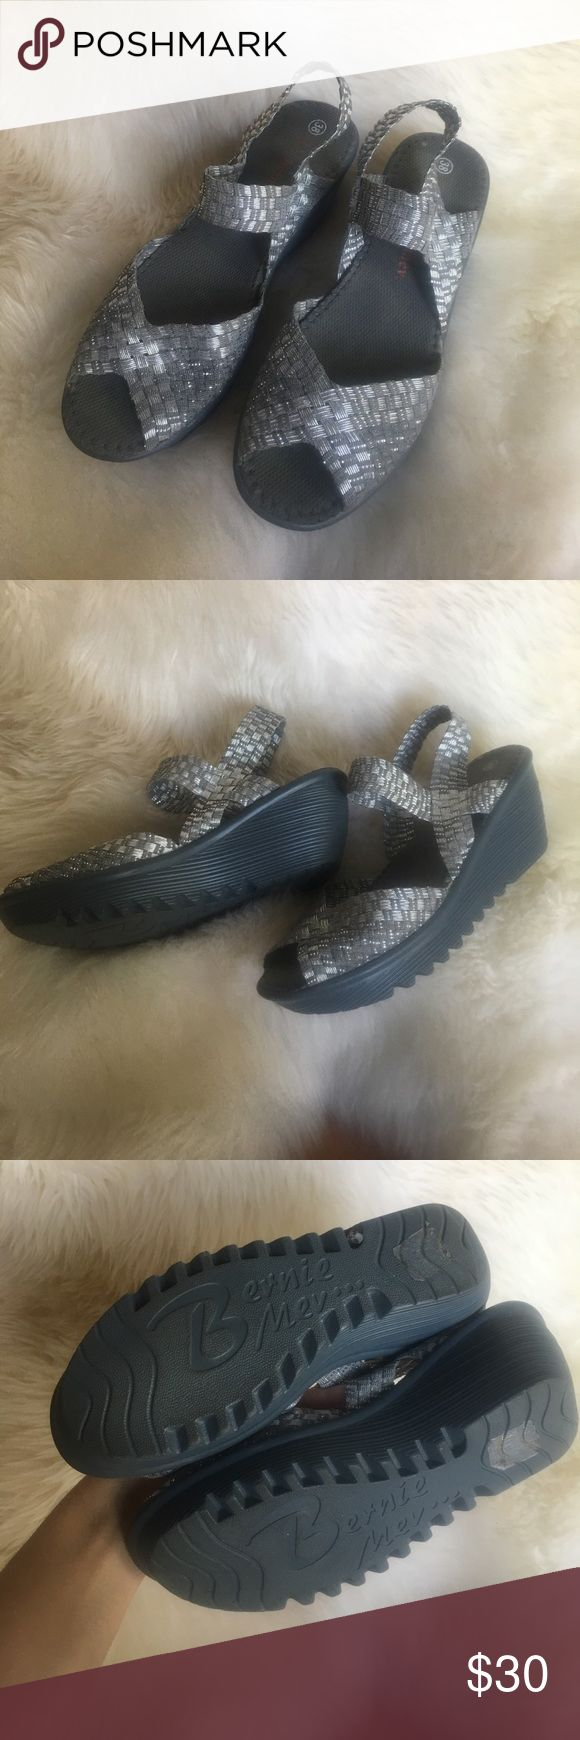 Silver wedge sandal Minimally worn, very comfortable. bernie mev. Shoes Sandals